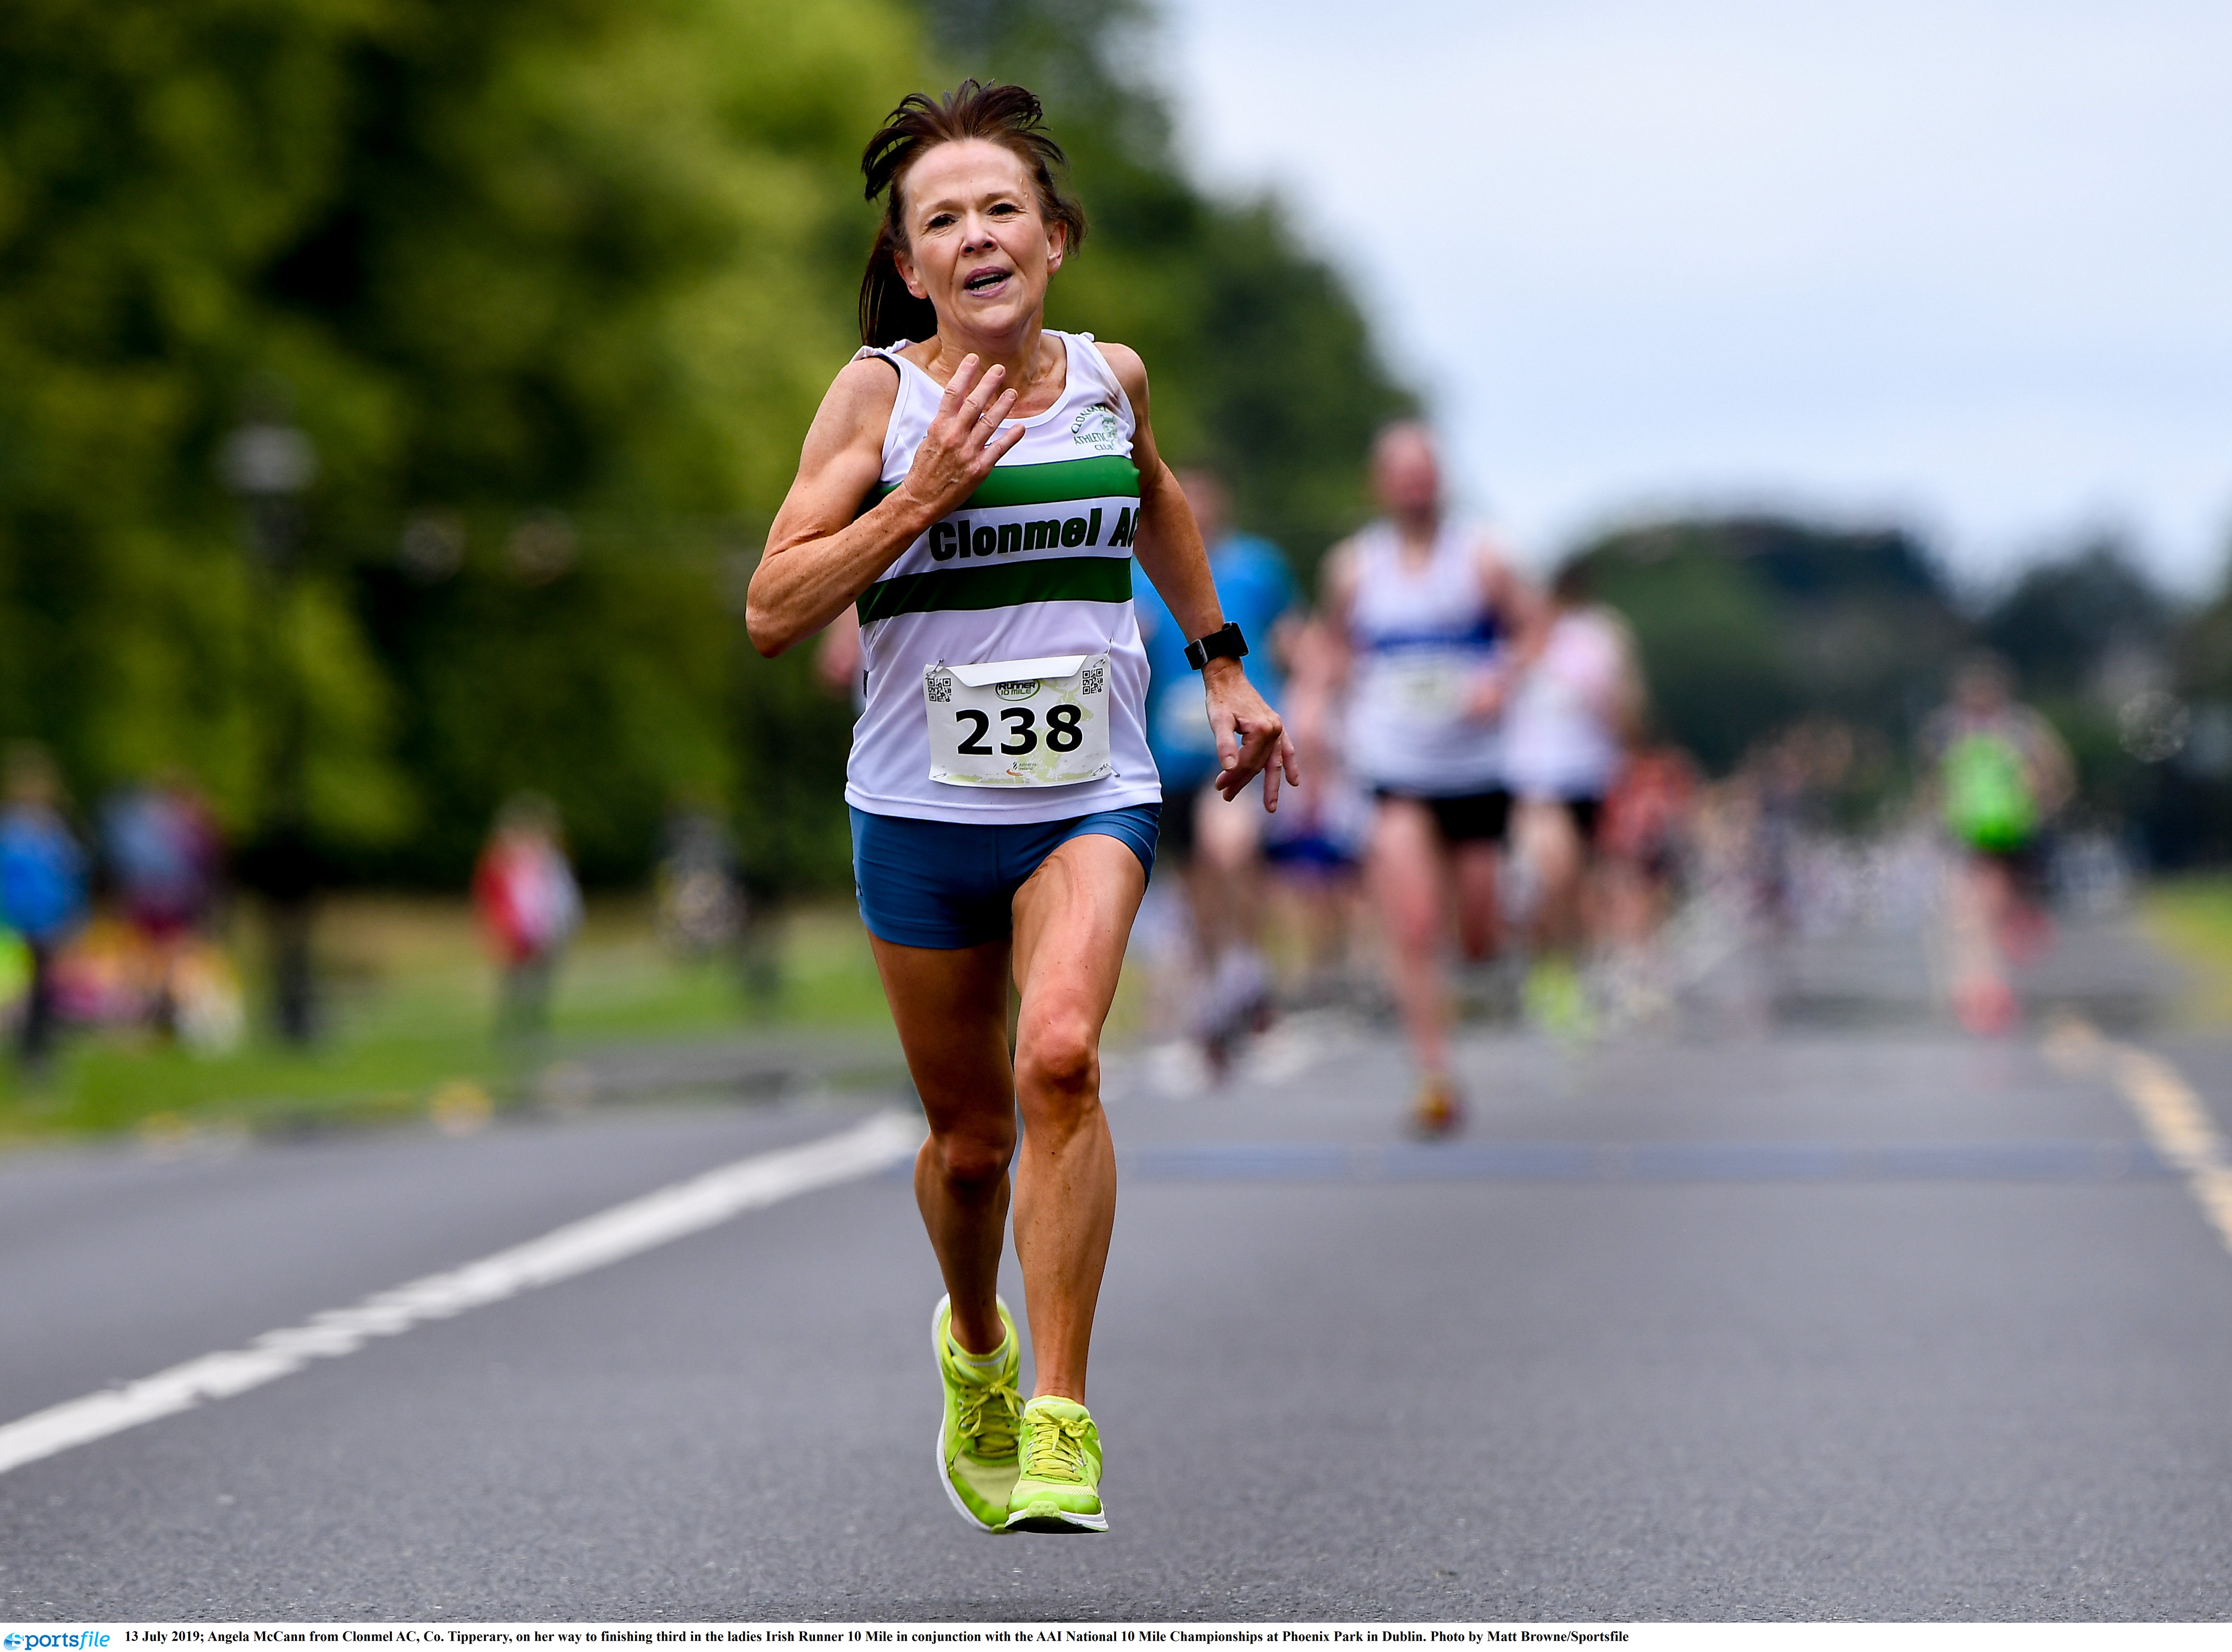 McCann and Derese win national half titles